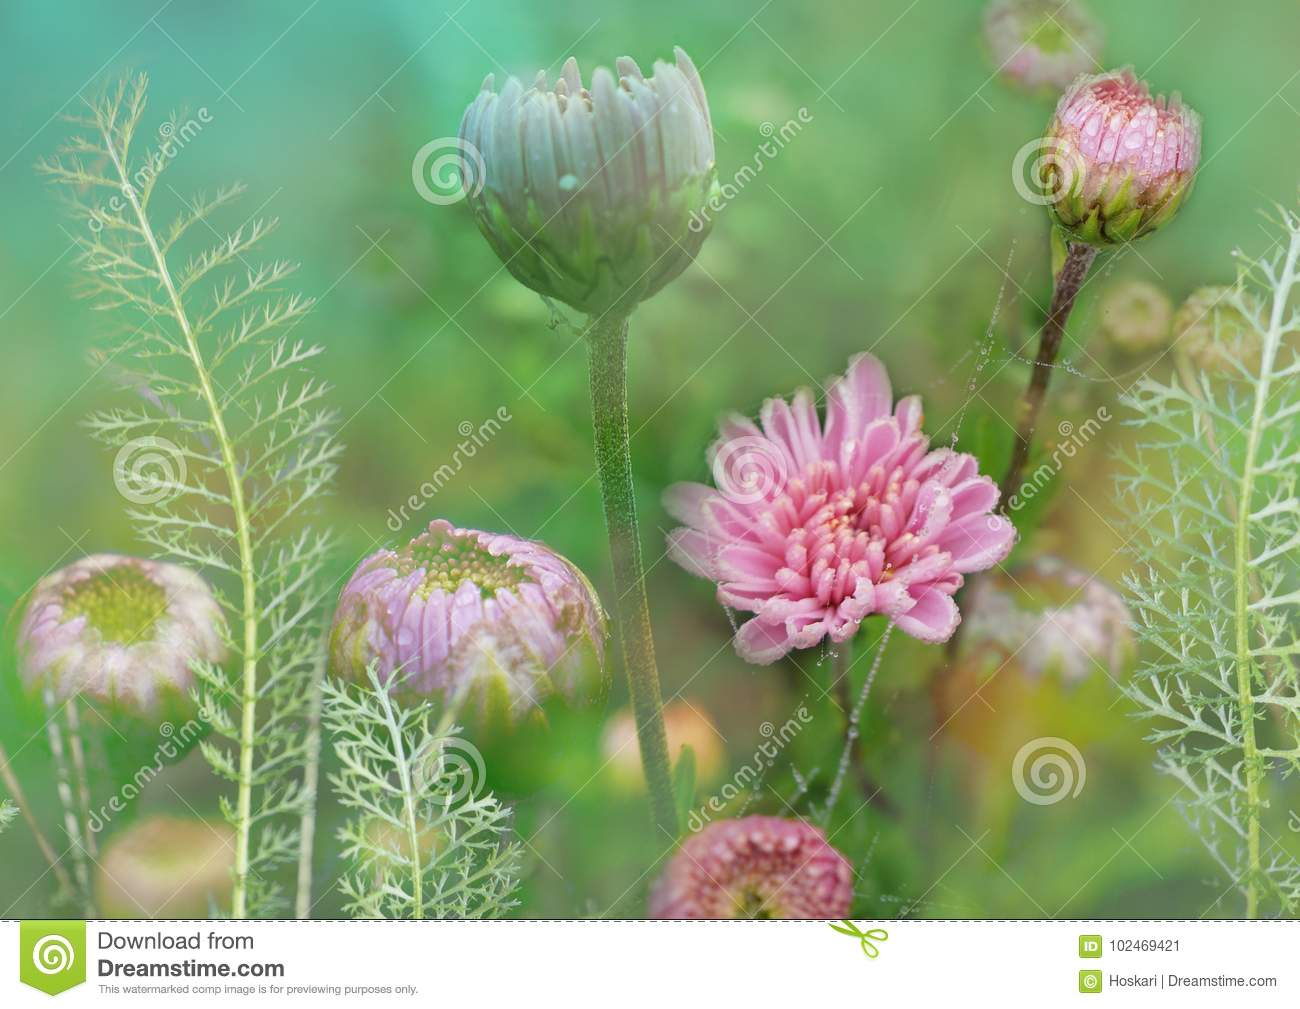 Flower with chrysanthemum and yarrow, floral meadow, plant decorative background, gentle and fragile floral illustration, floral a